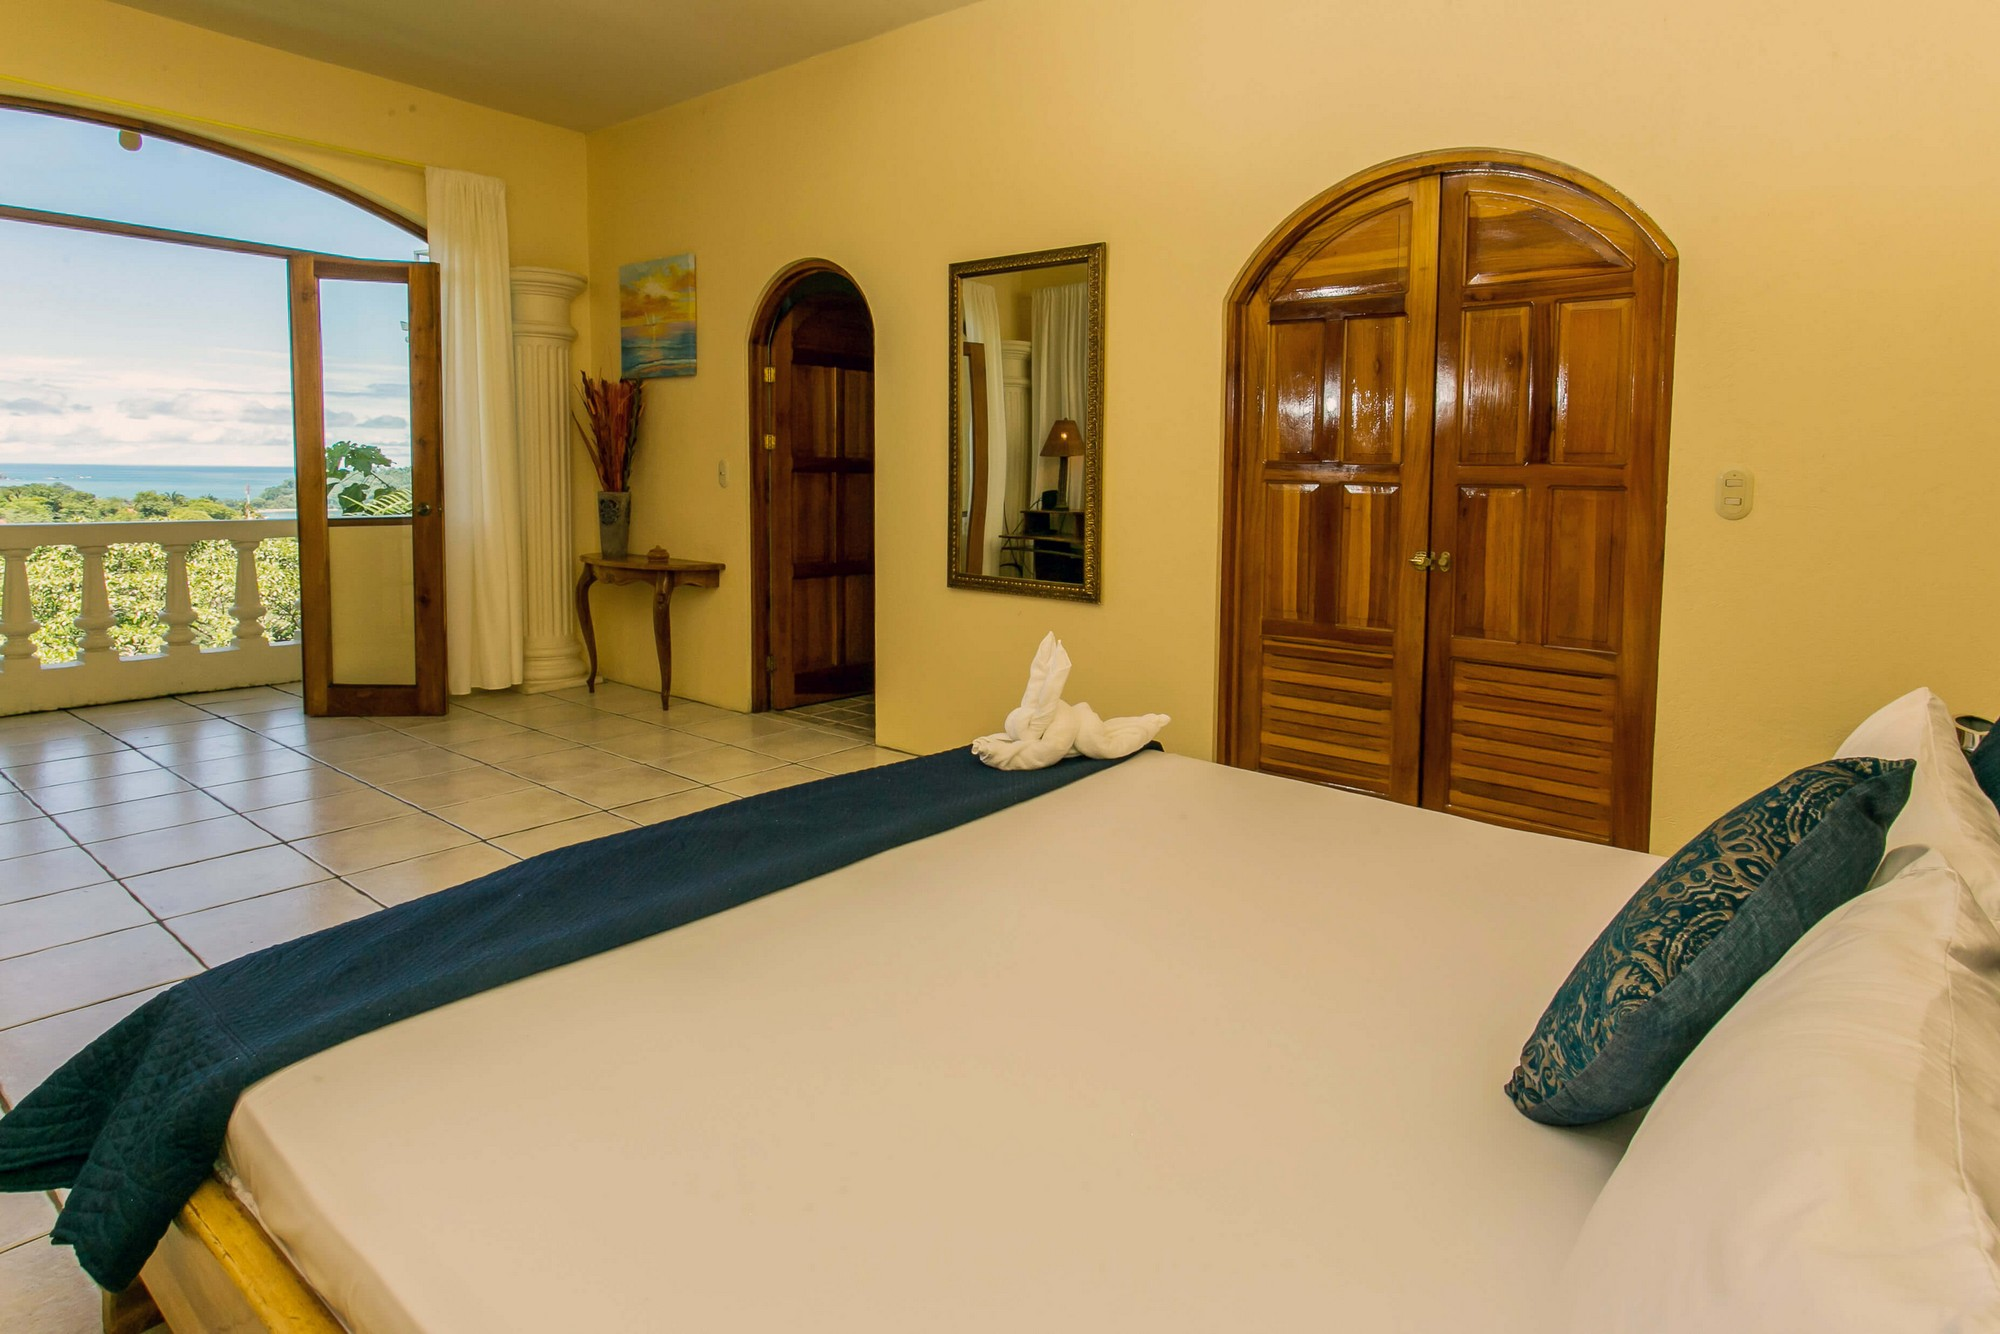 Castillo de Amber, Manuel Antonio